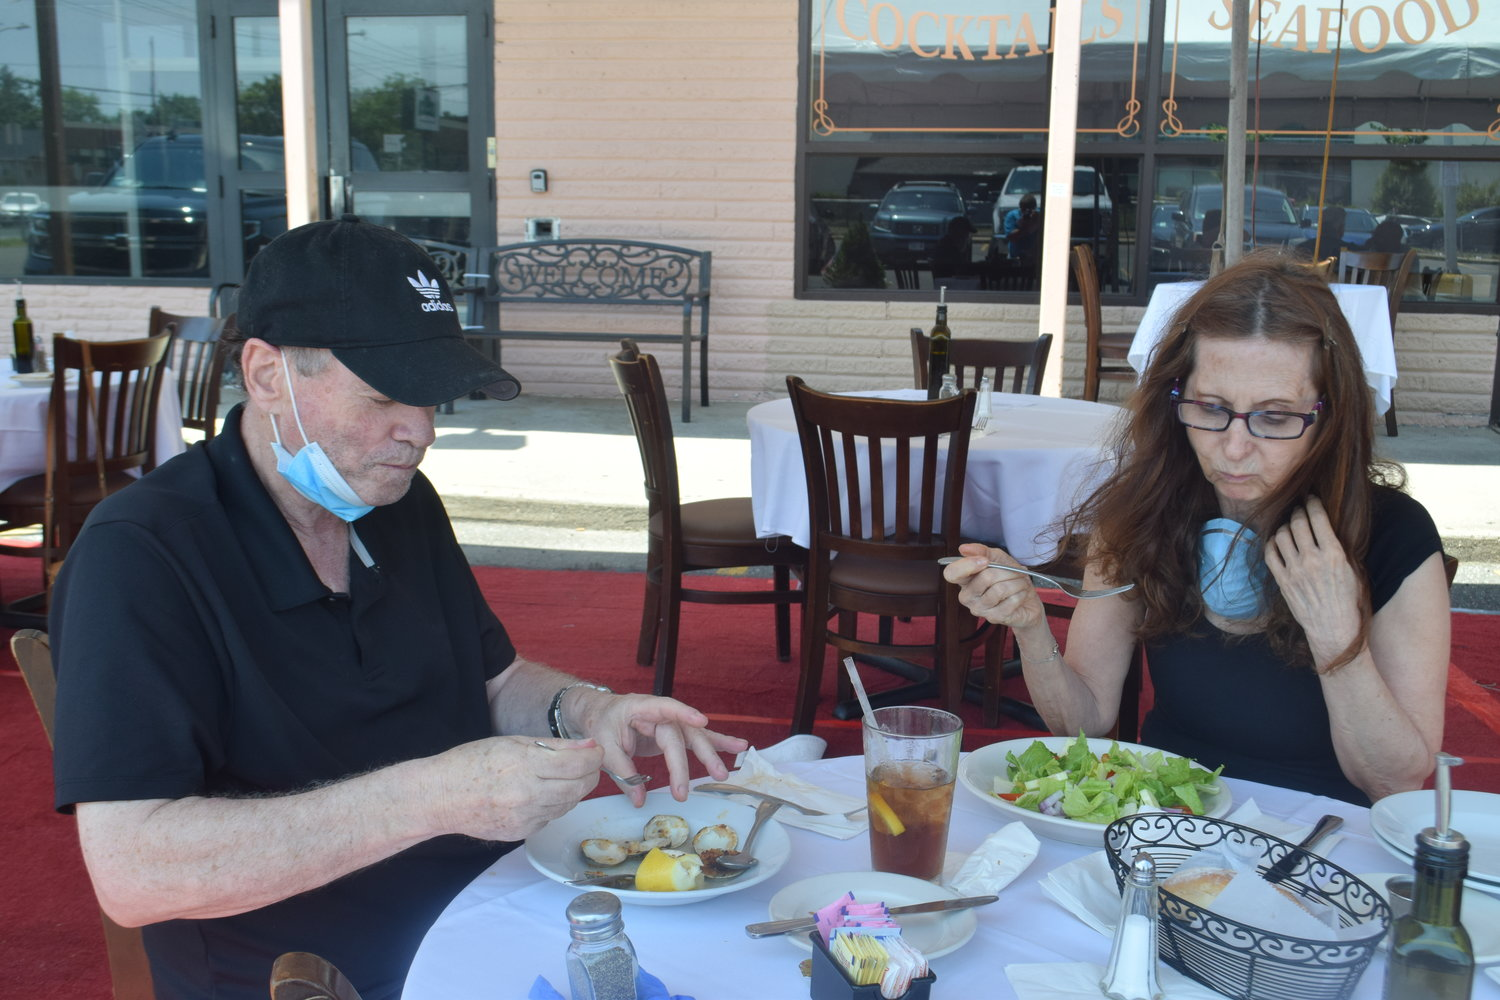 At Friendlier Italian Restaurant in Woodmere, Bayside residents Neal and Ilene Rose dug into their lunch appetizers.